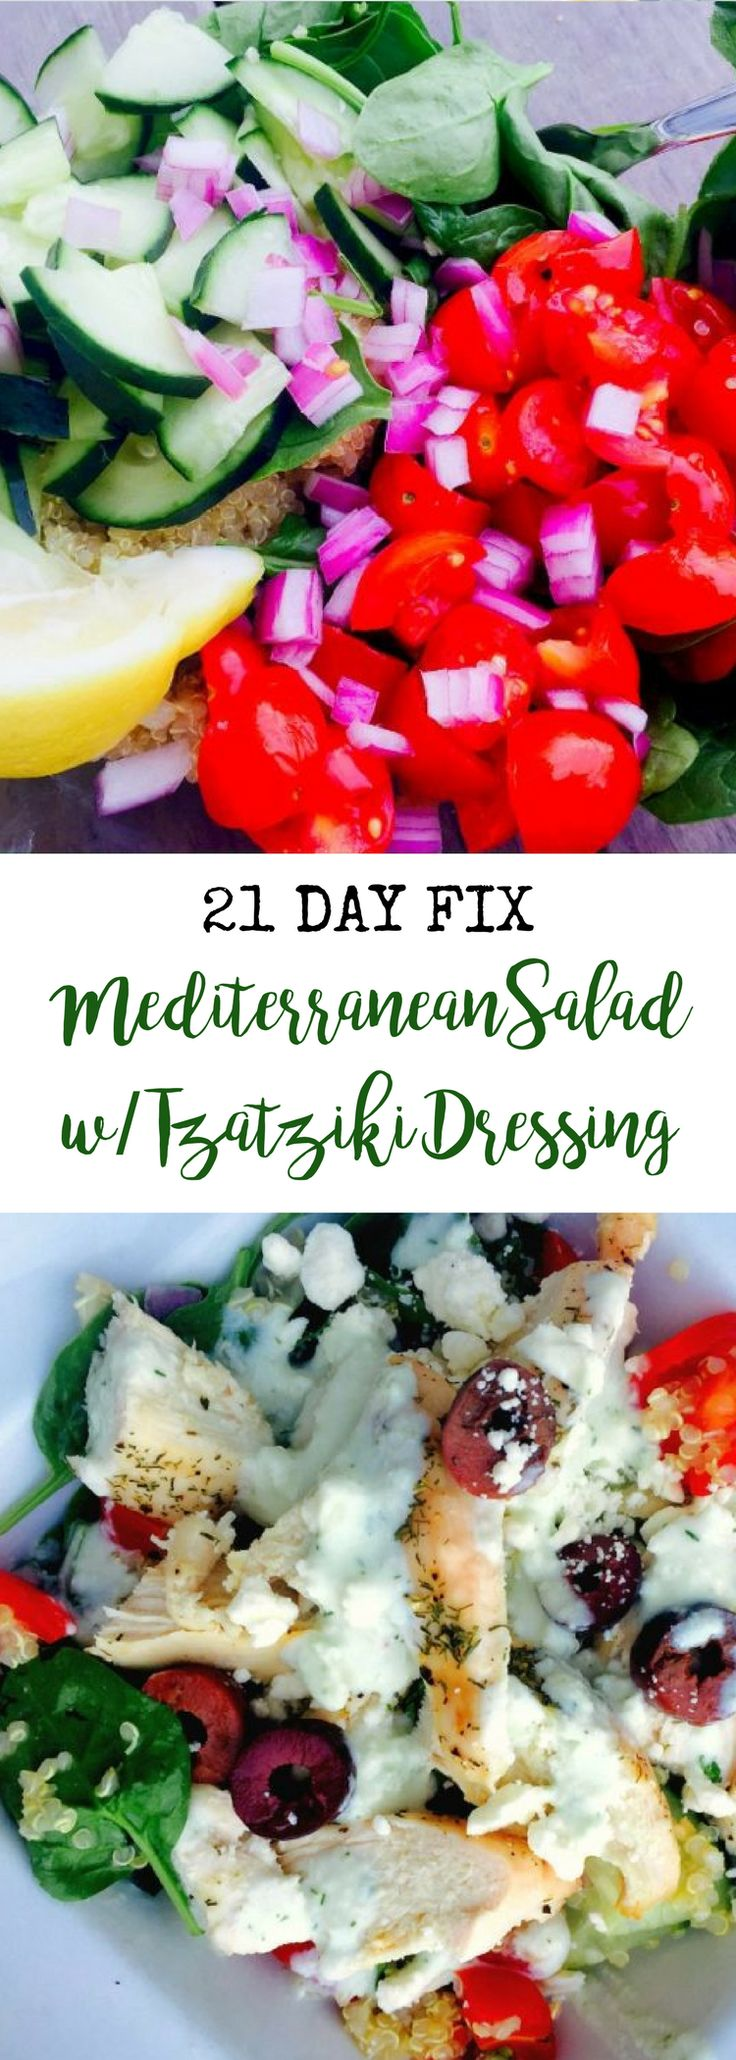 21 Day Fix Mediterranean Salad with Tzatziki Dressing | Confessions of a Fit Foodie